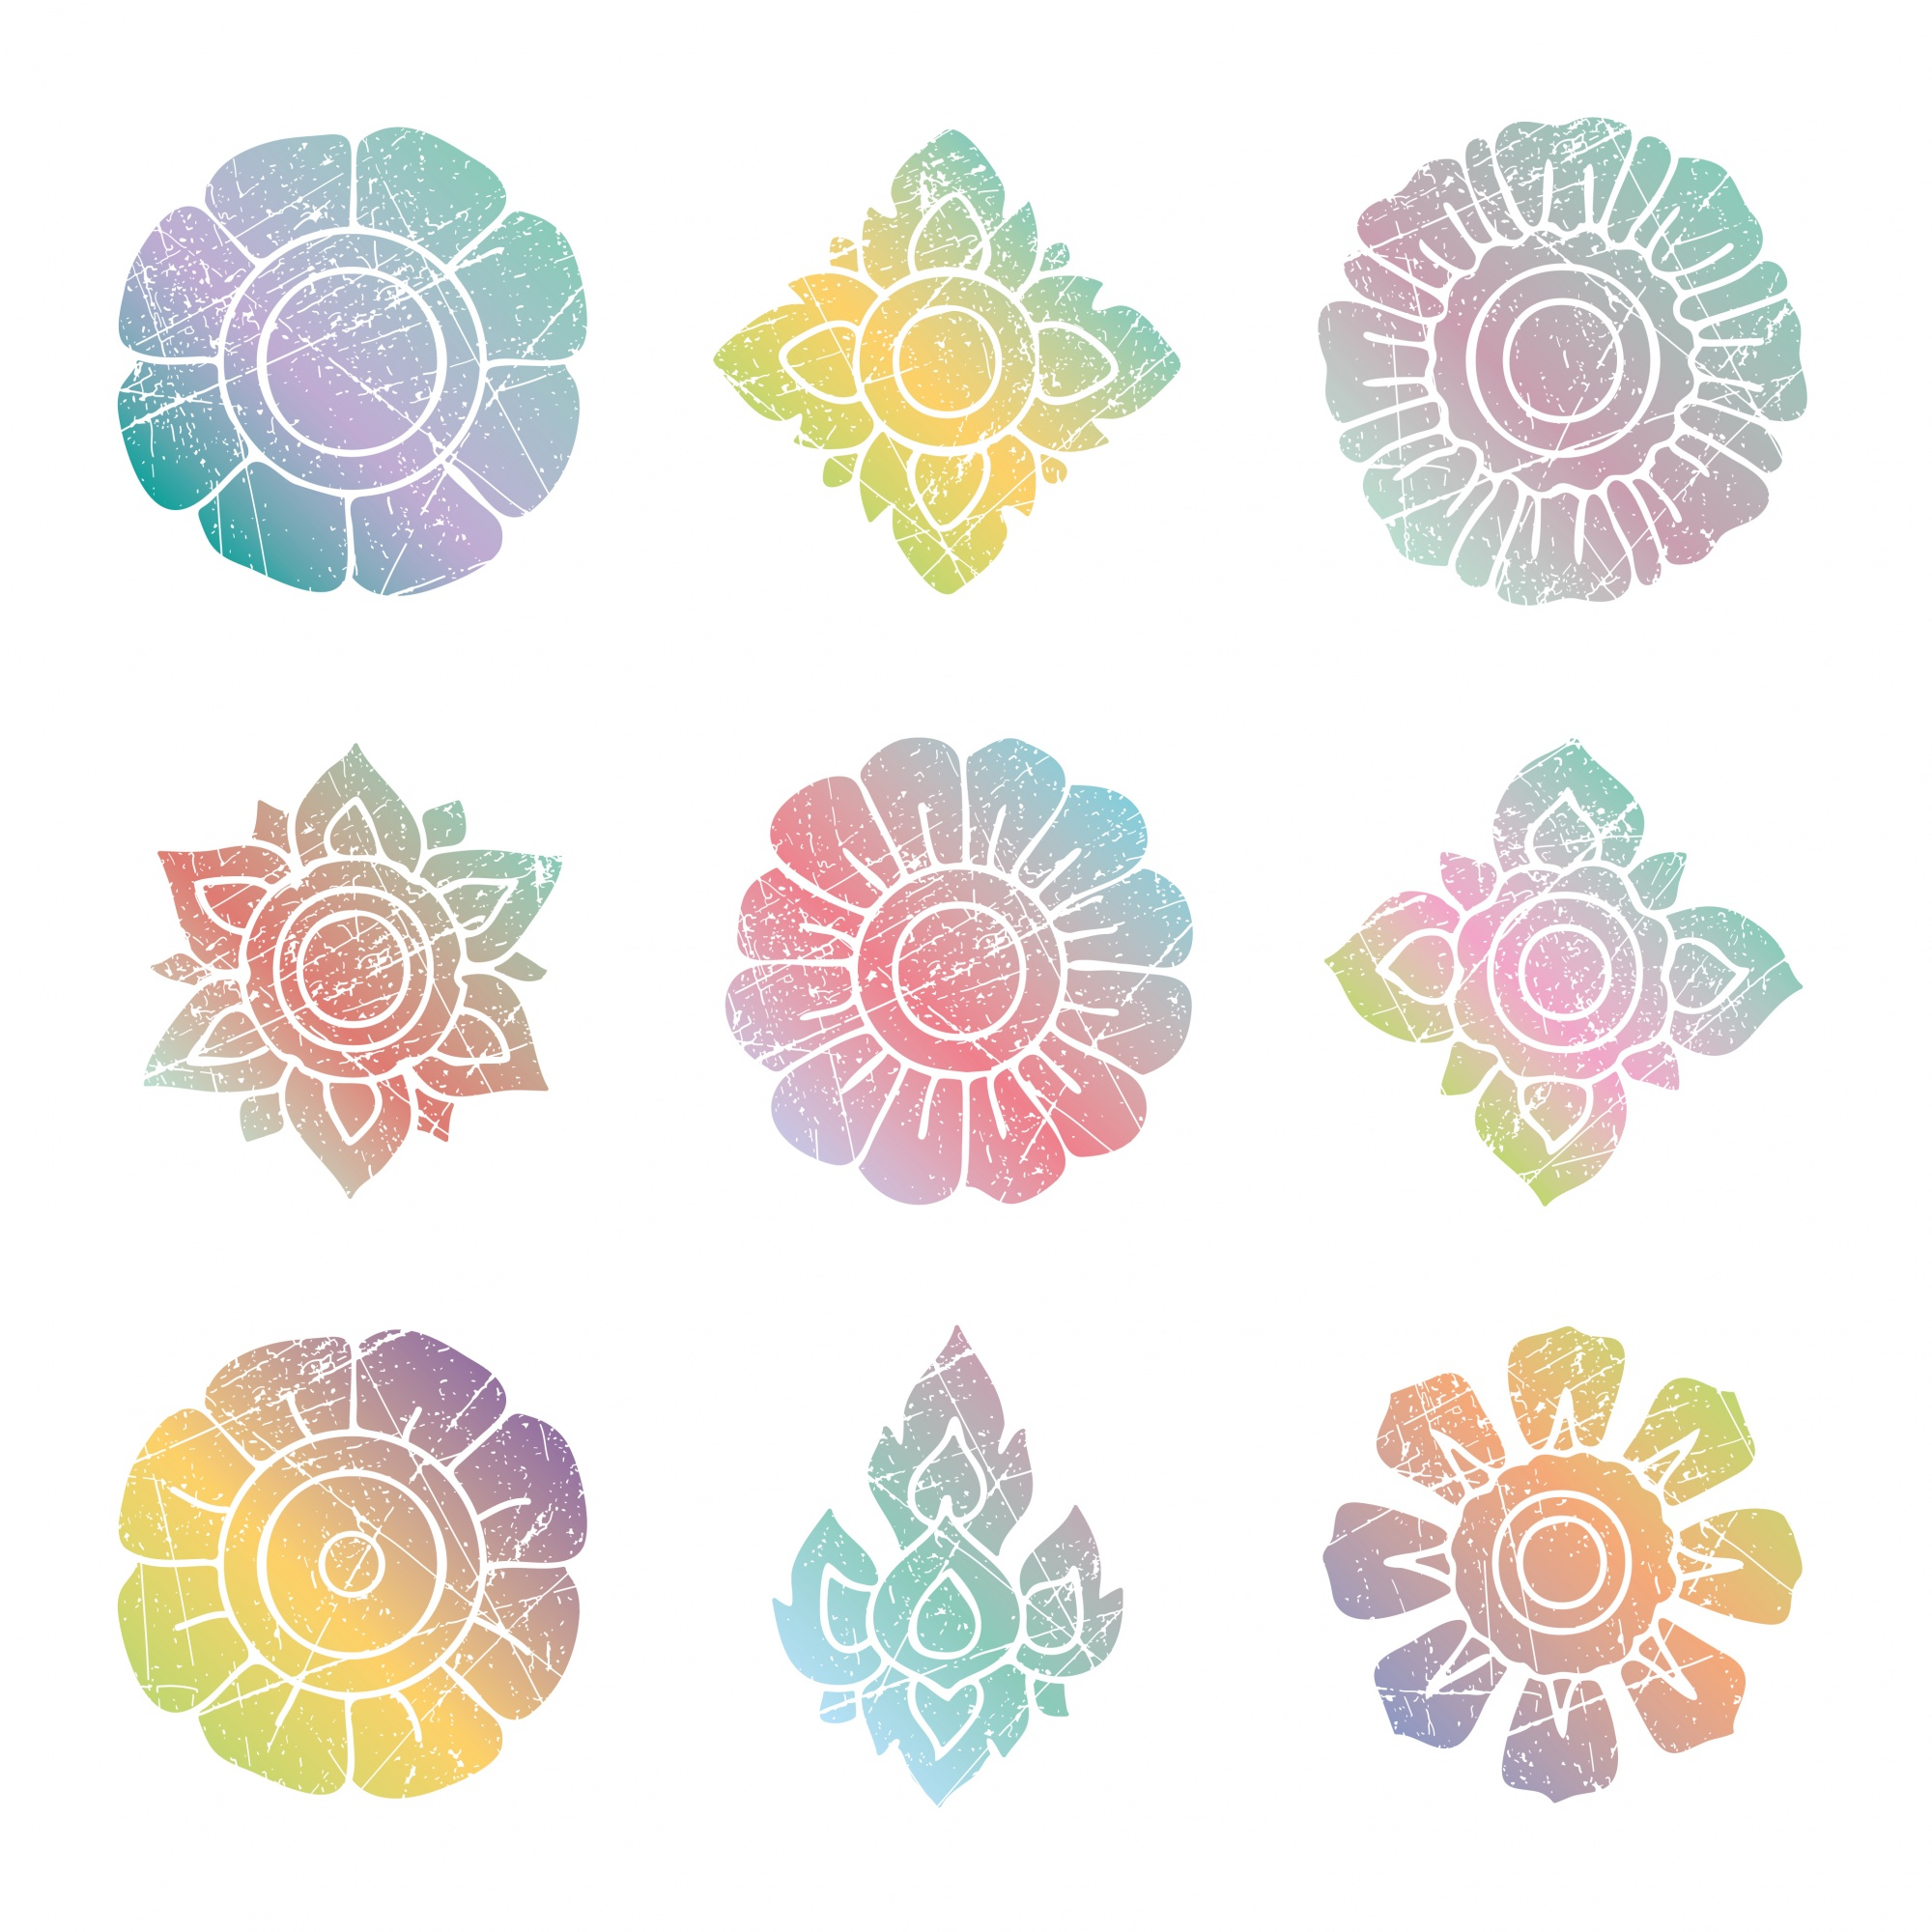 Floral thai colorful grunge vector set